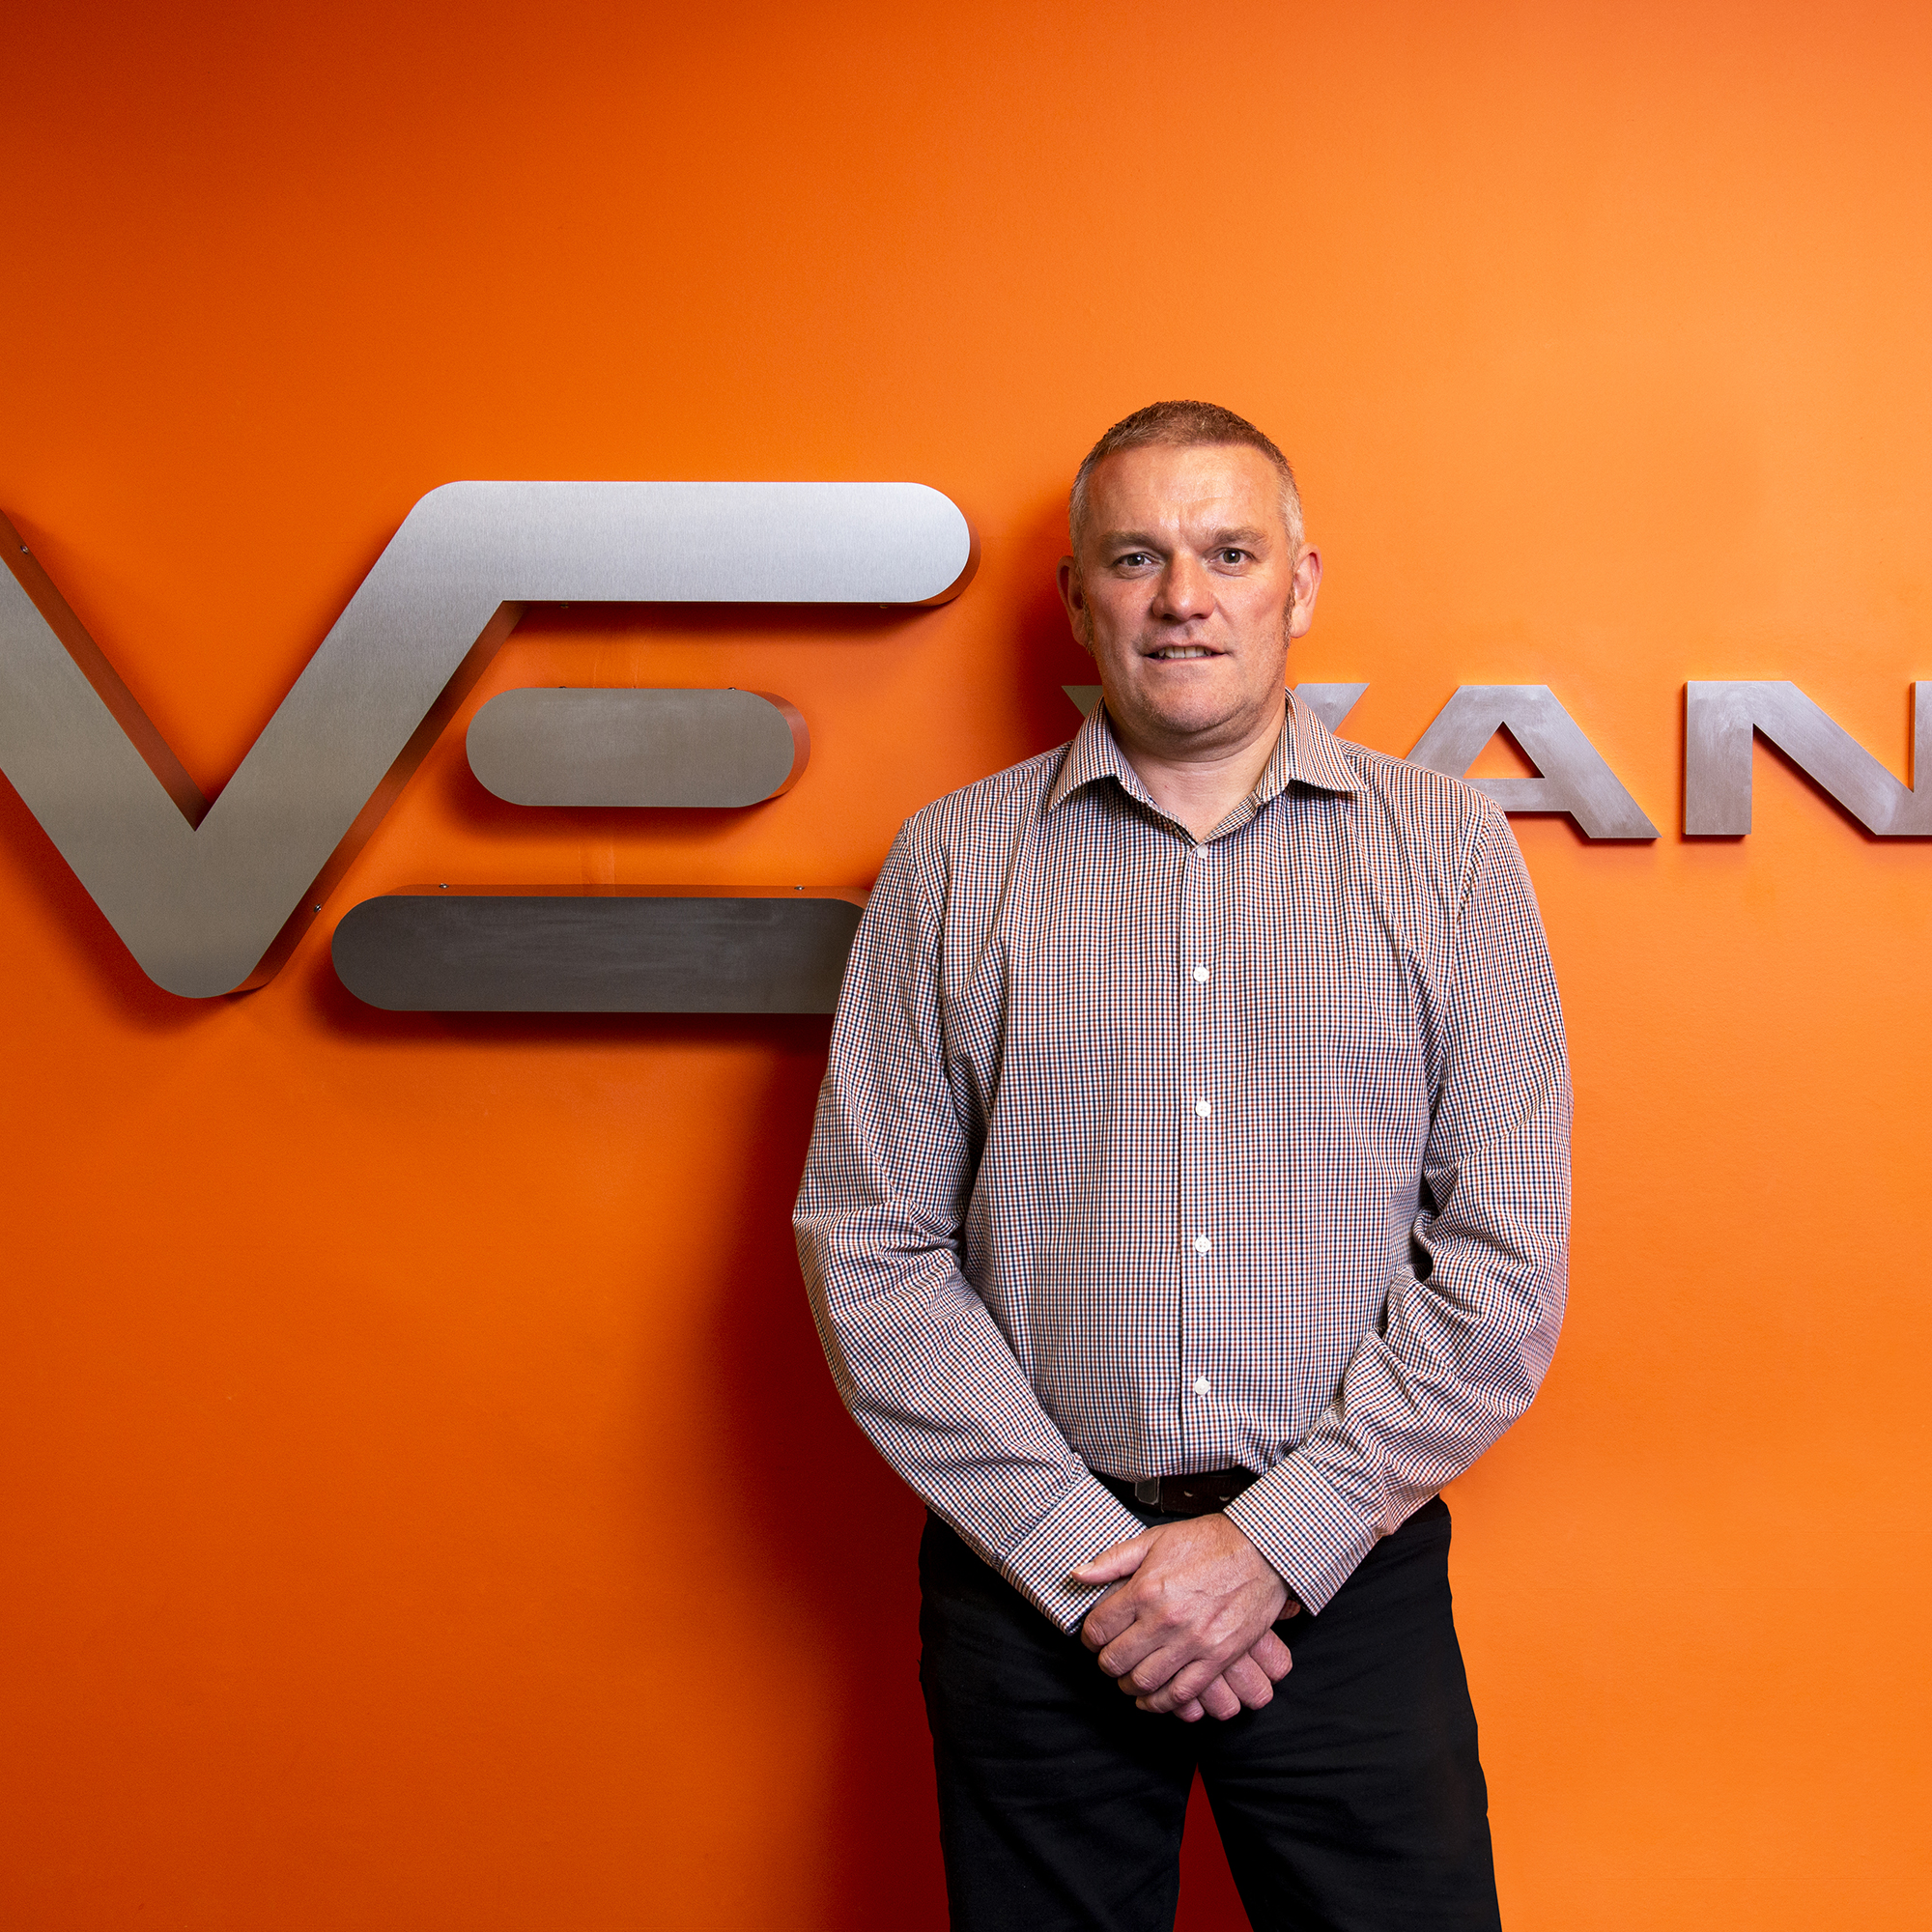 Van Elle Manager stands in front of his orange sign